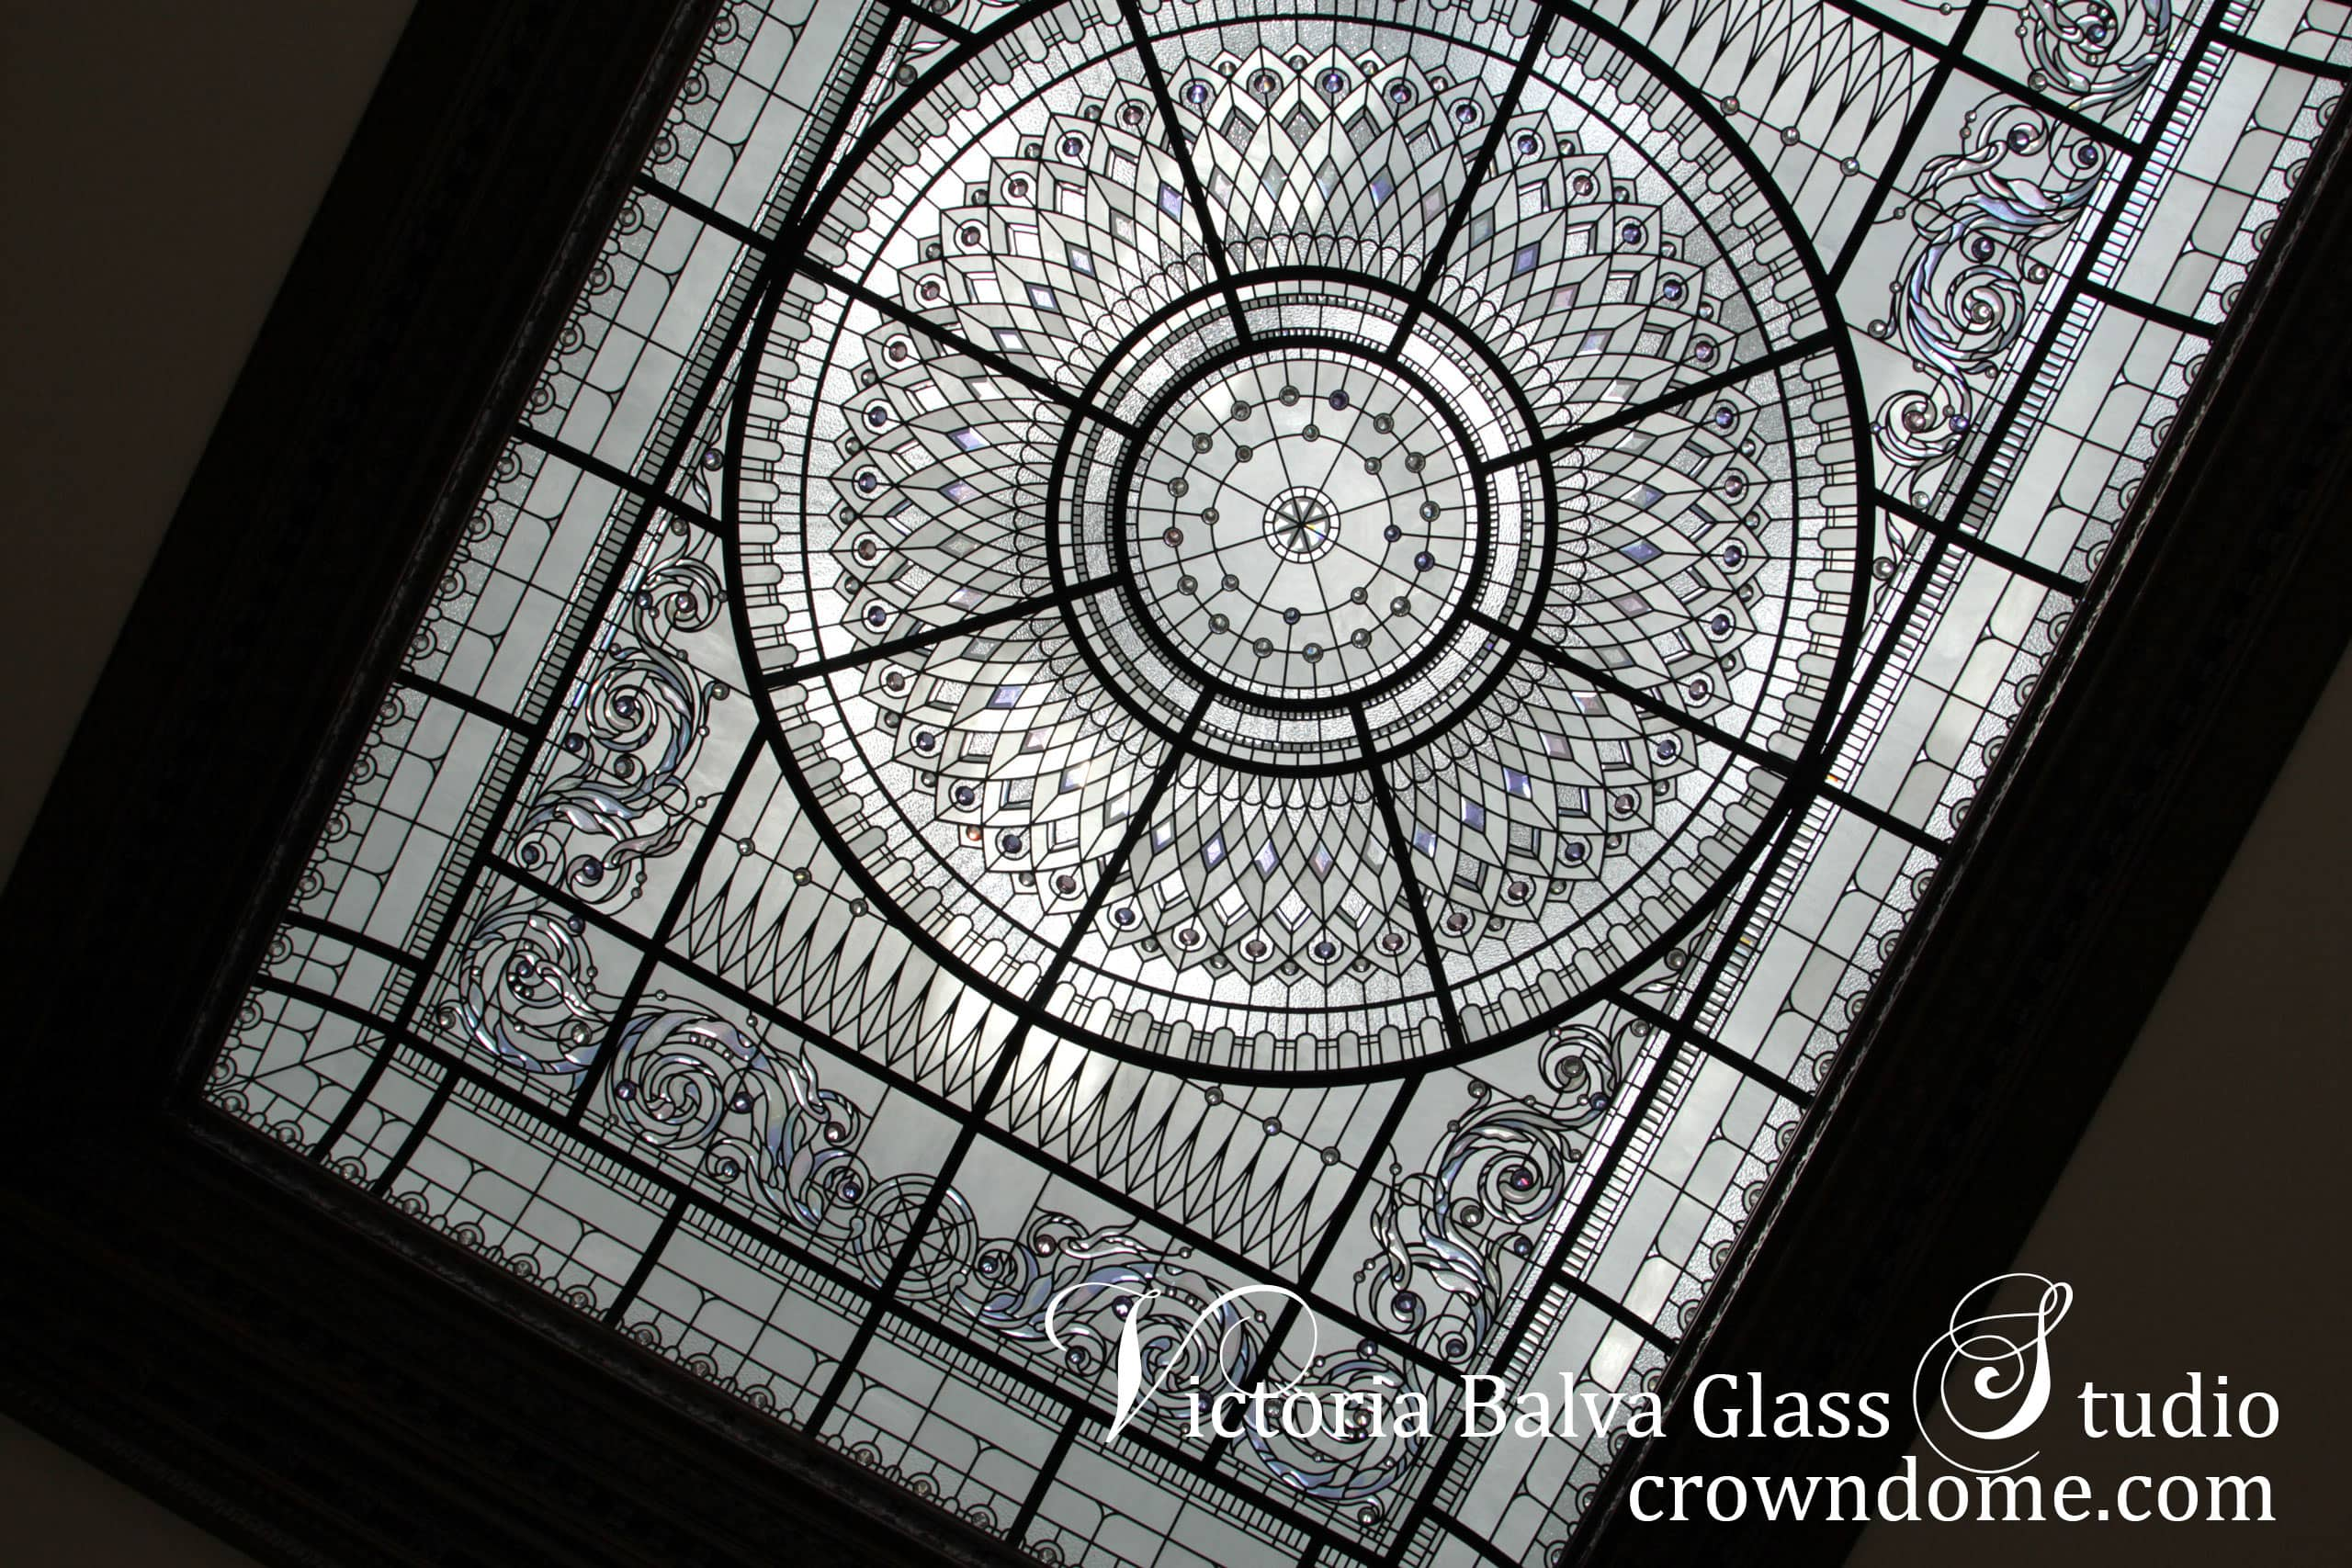 Large stained leaded glass domed ceiling skylight residential home w intricate glass dome classic design installed in New York. Large stained glass dome skylights with clear textured glasses elusive colors custom beveled glass accent crystal jewels for the interior entrance hall of luxury custom built house. Stained glass dome lay light design by glass artist Victoria Balva